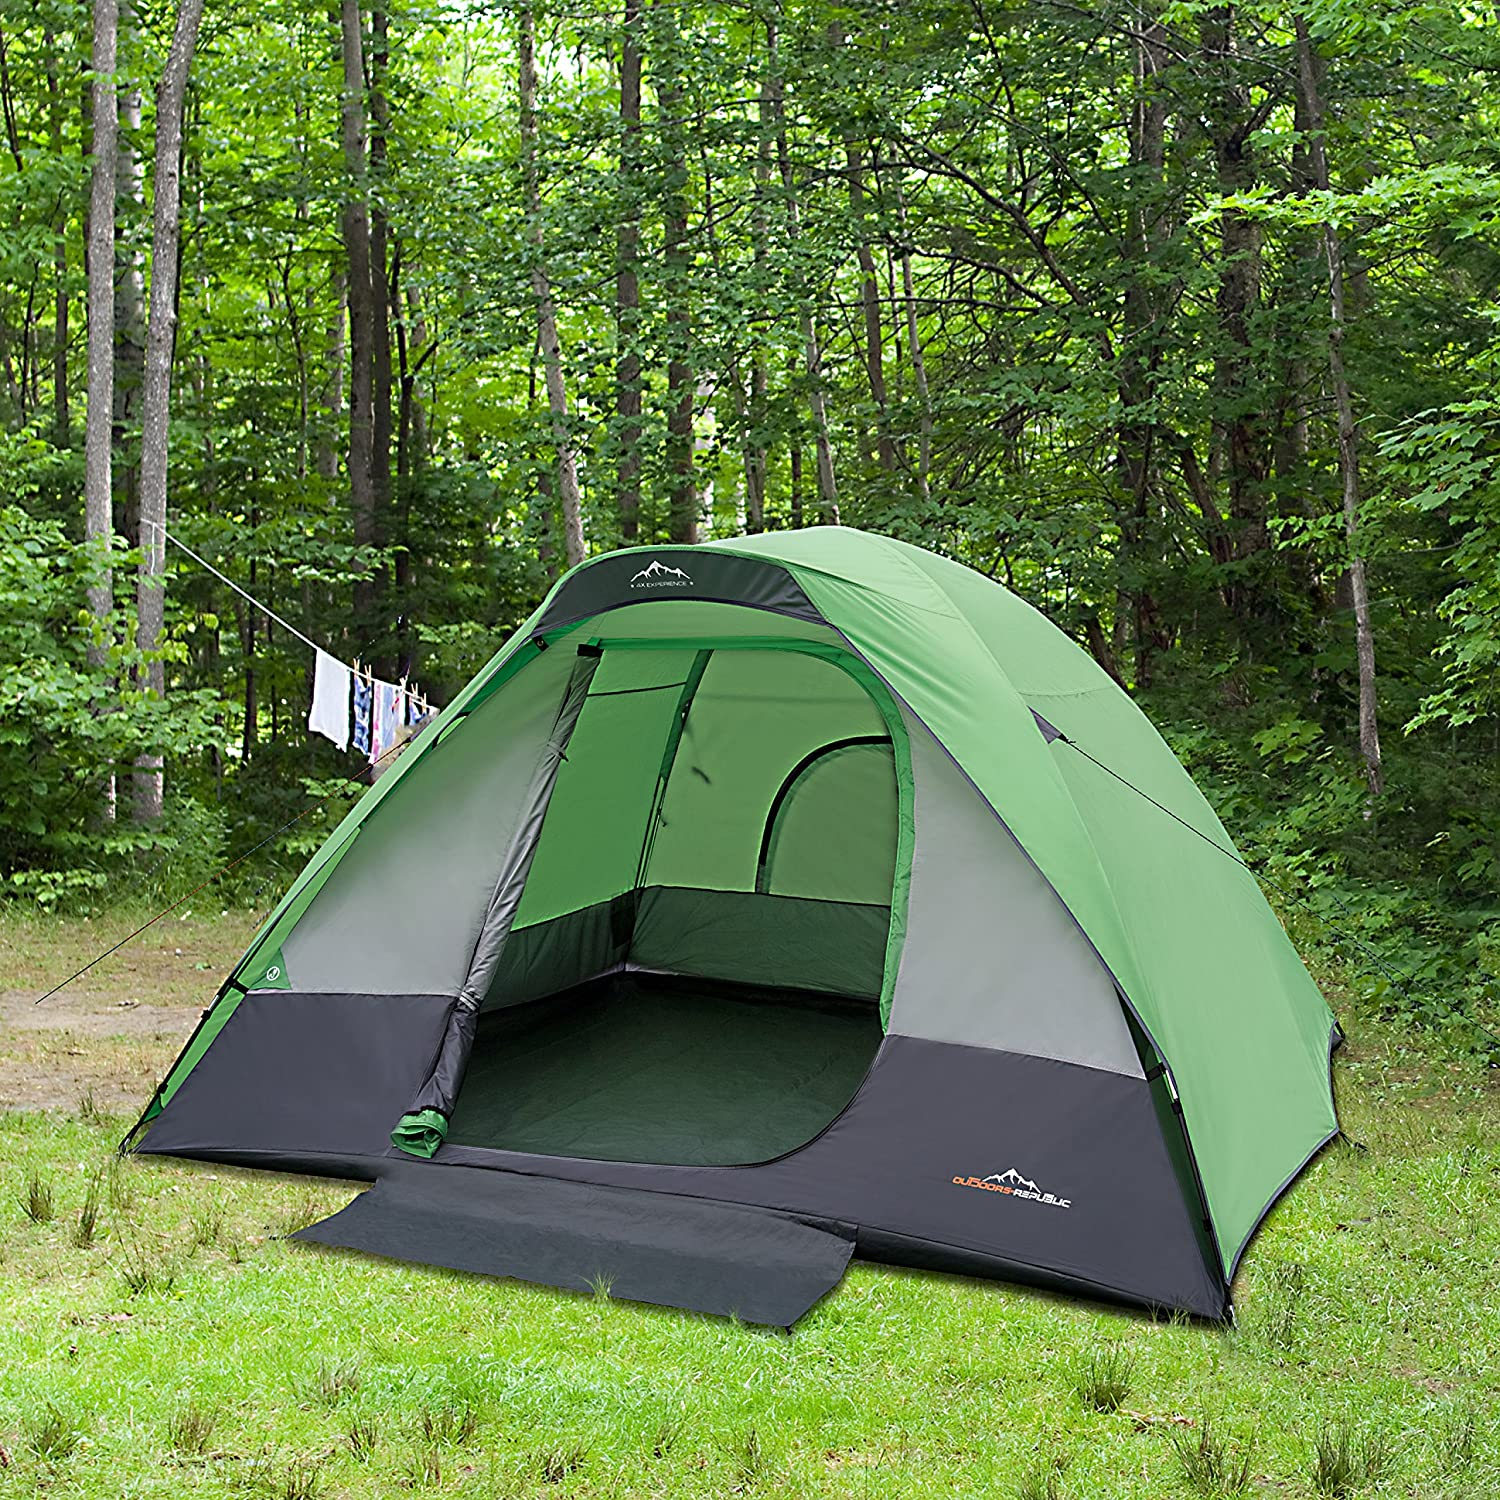 & Ventura 7ft X 6ft Cabin Dome Tent: Amazon.ca: Sports u0026 Outdoors